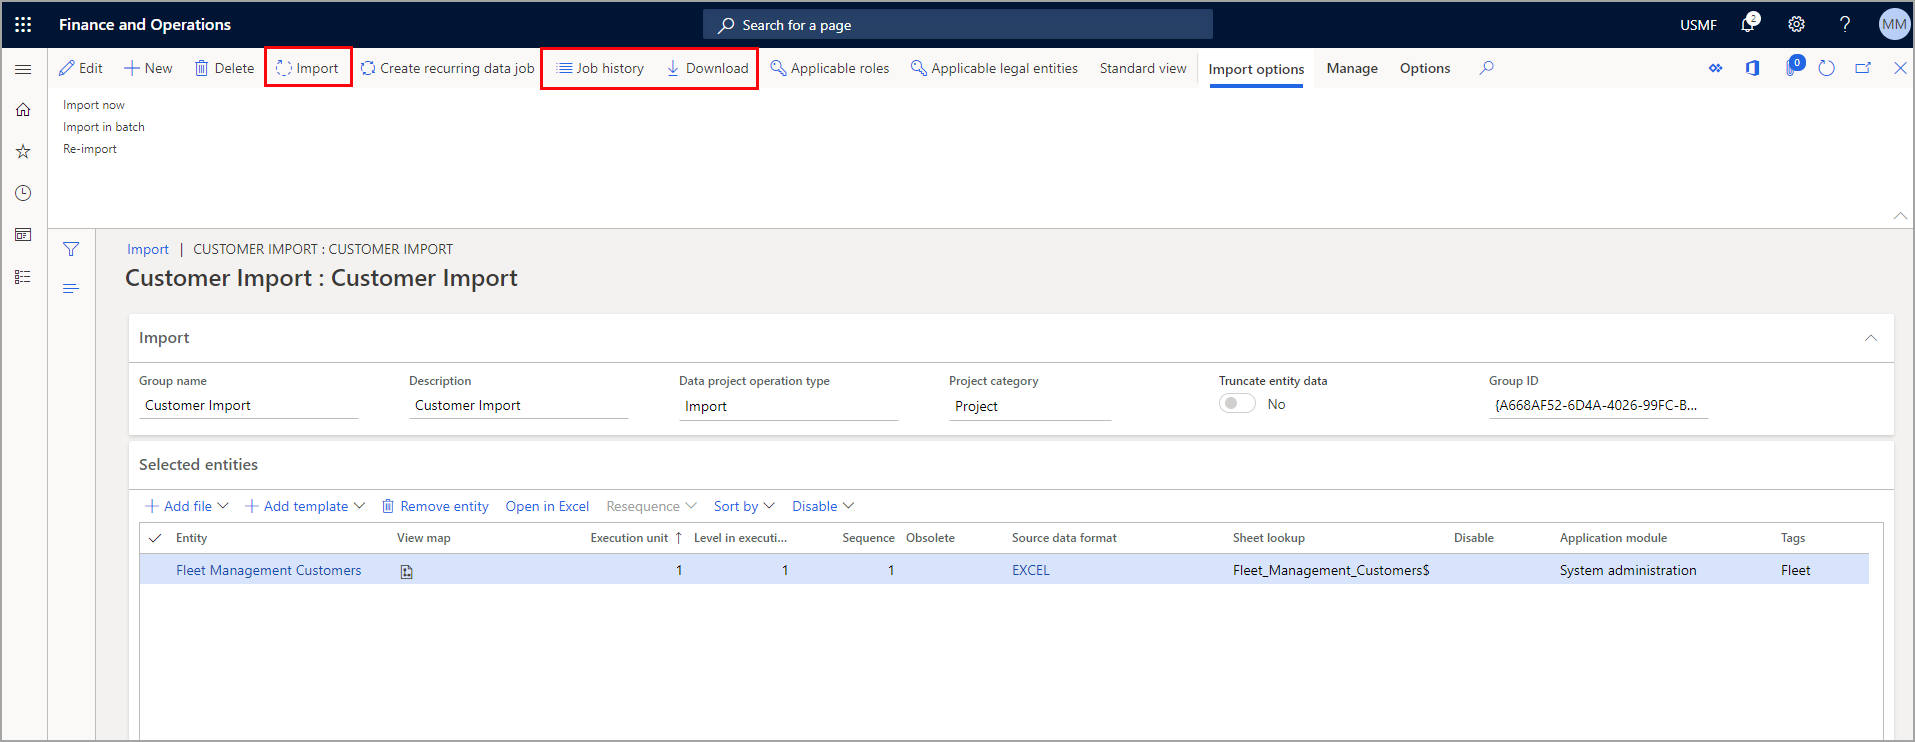 Screenshot with the Import, Job history and Download buttons highlighted.